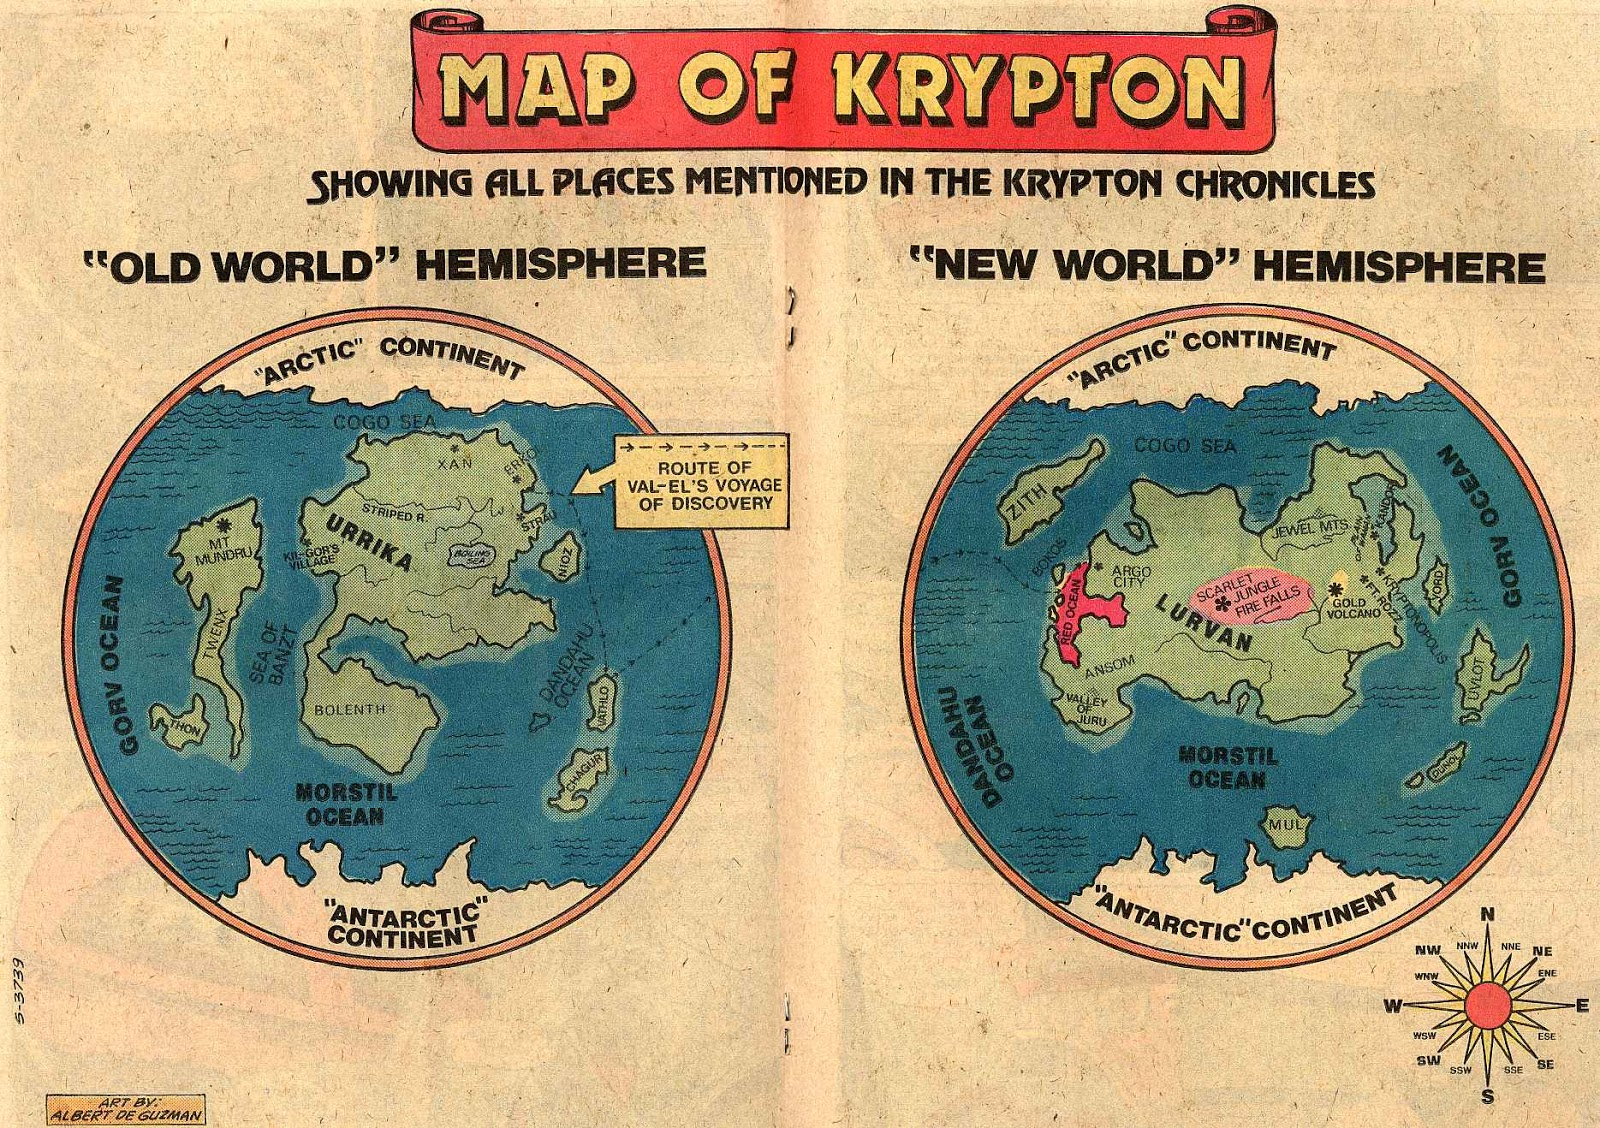 DC Comics of the 1980s: 1981 - Map of Krypton